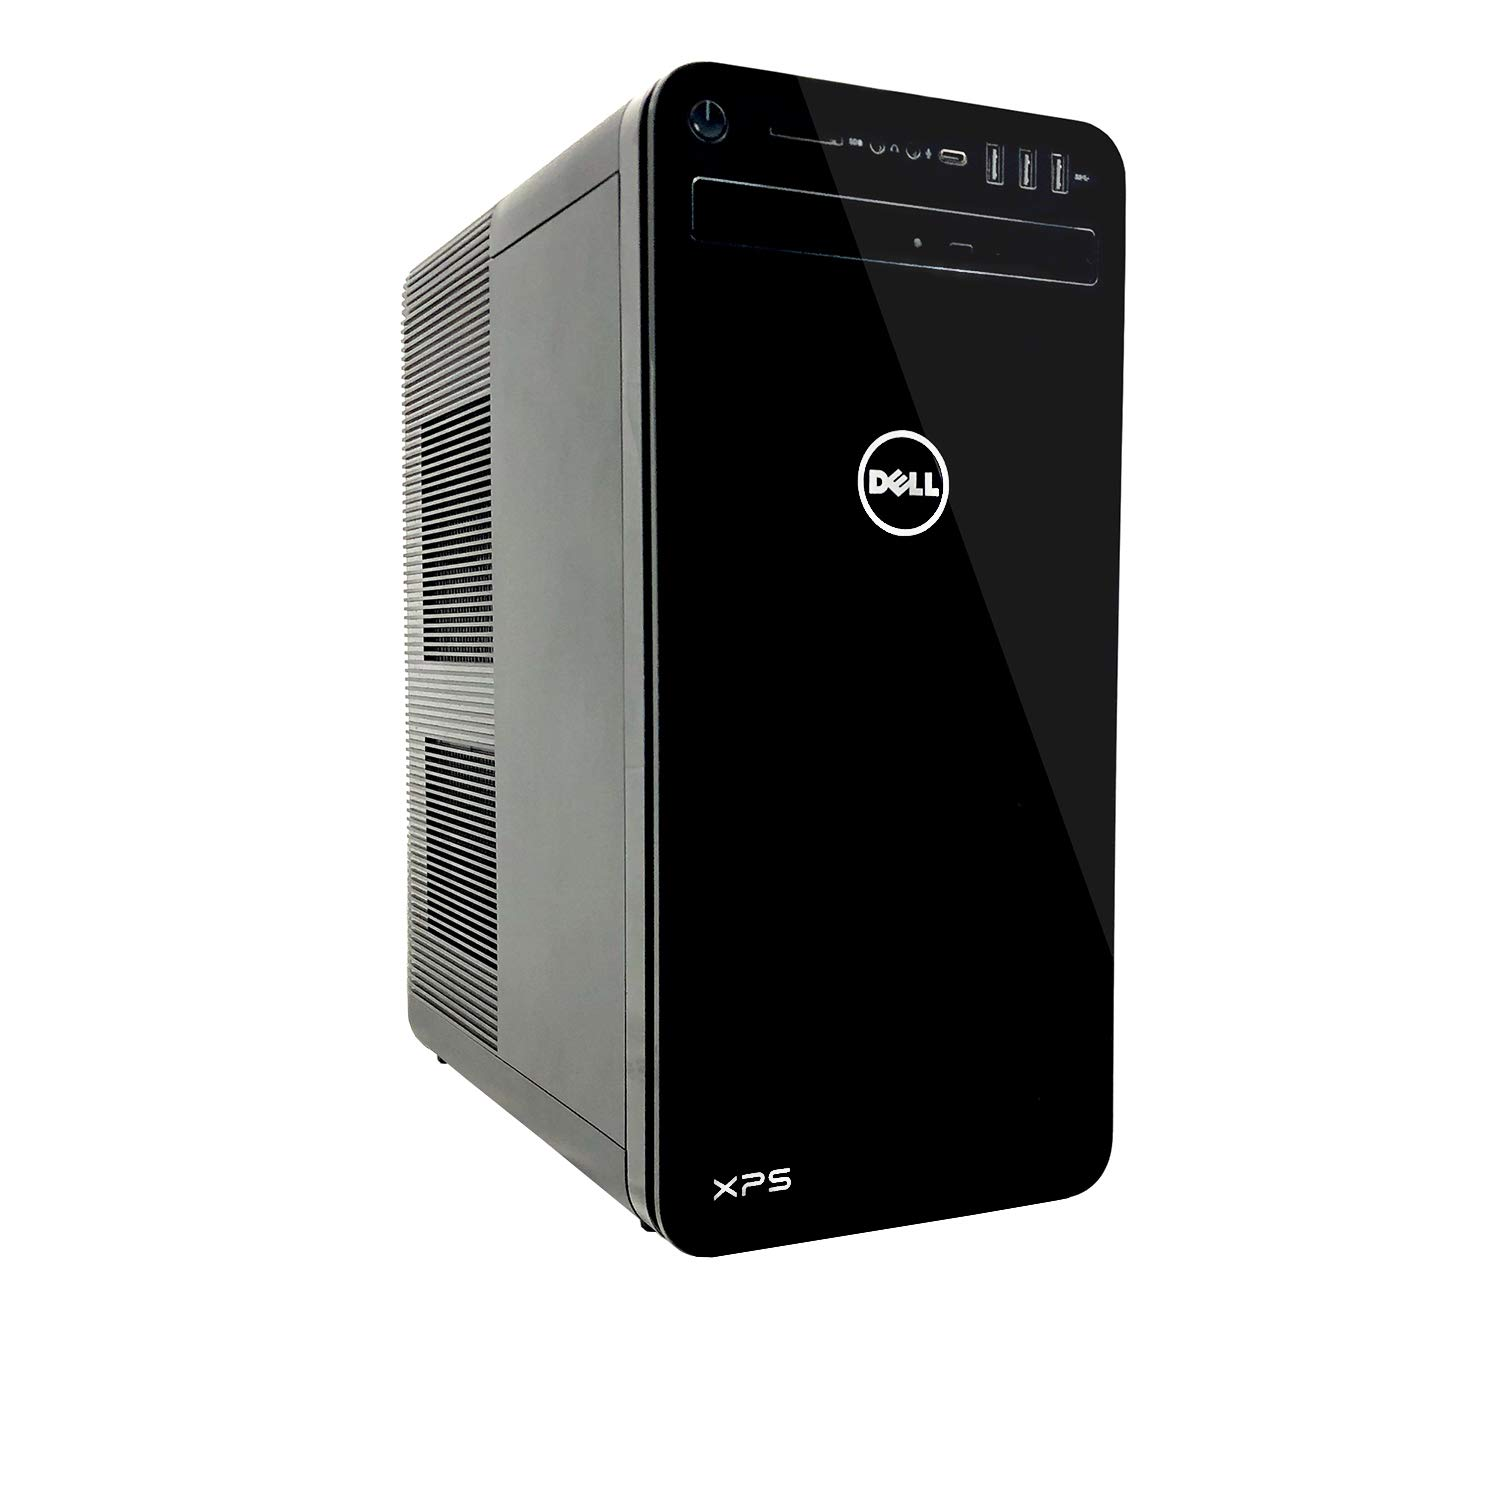 Dell XPS 8930 Tower Desktop - 8th Gen  Intel Core i7-8700 6-Core up to 4 60  GHz, 16GB DDR4 Memory, 256GB SSD + 2TB SATA Hard Drive, 4GB Nvidia GeForce